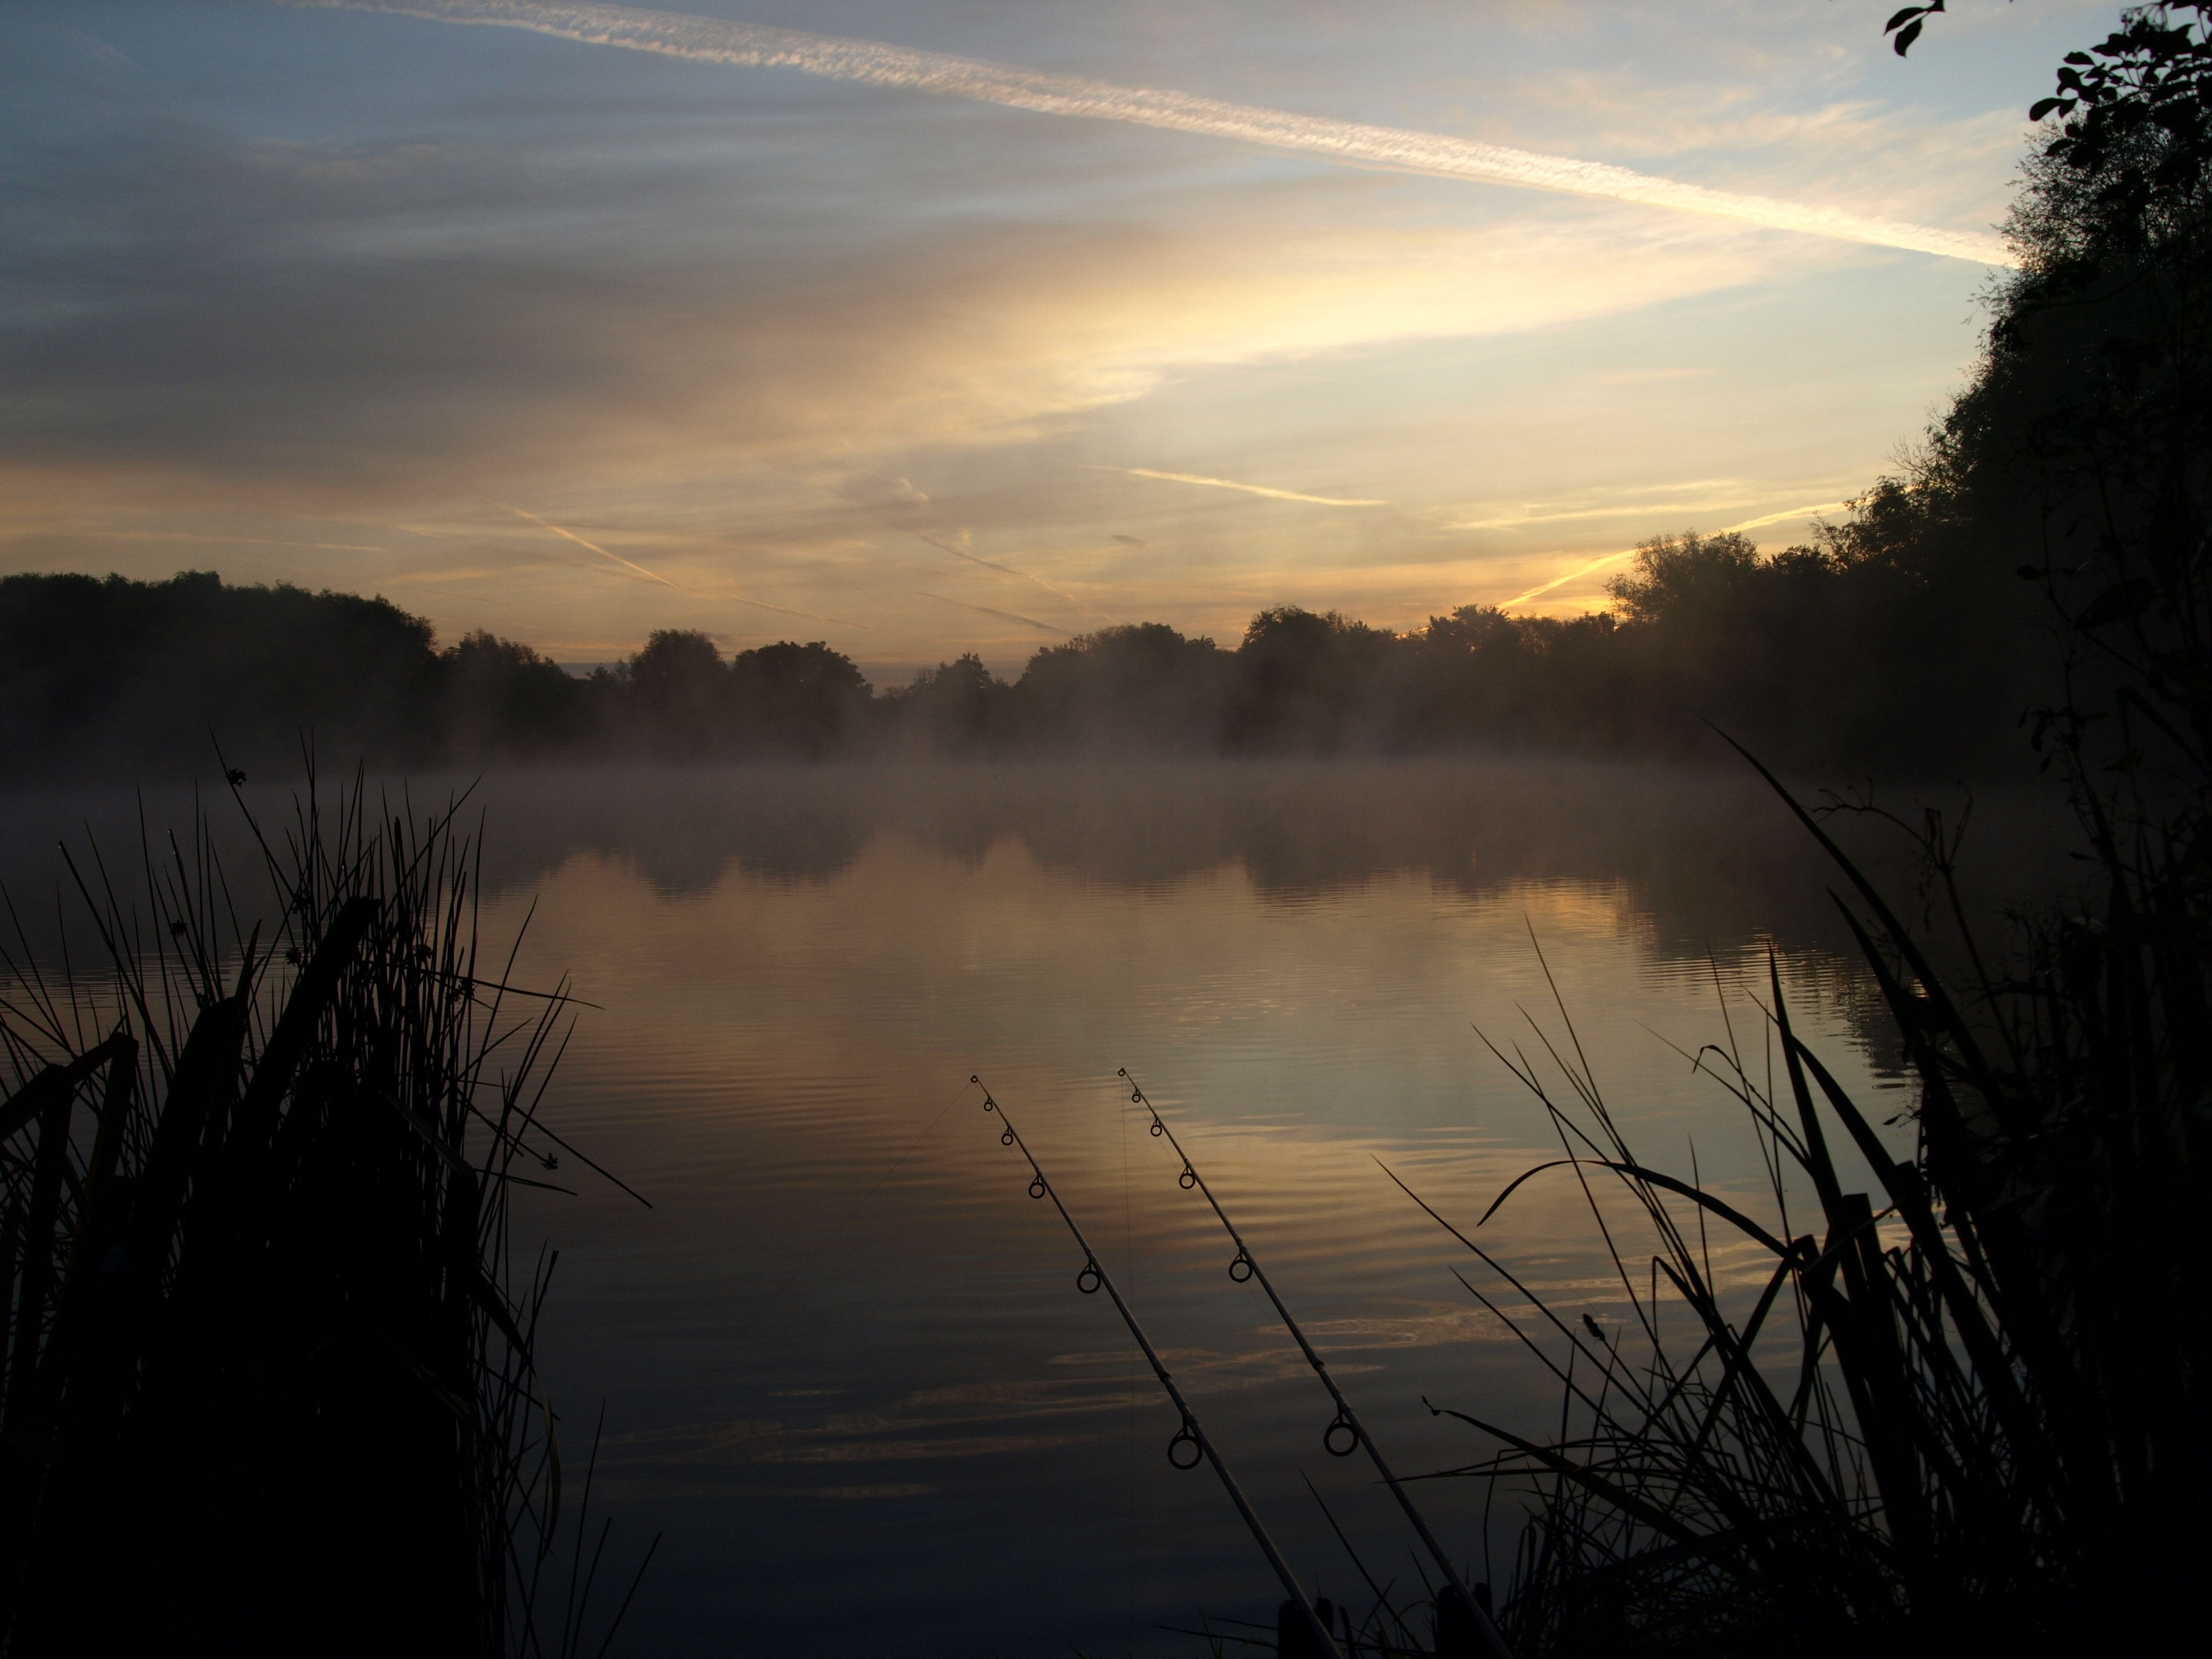 Carpfishing Background